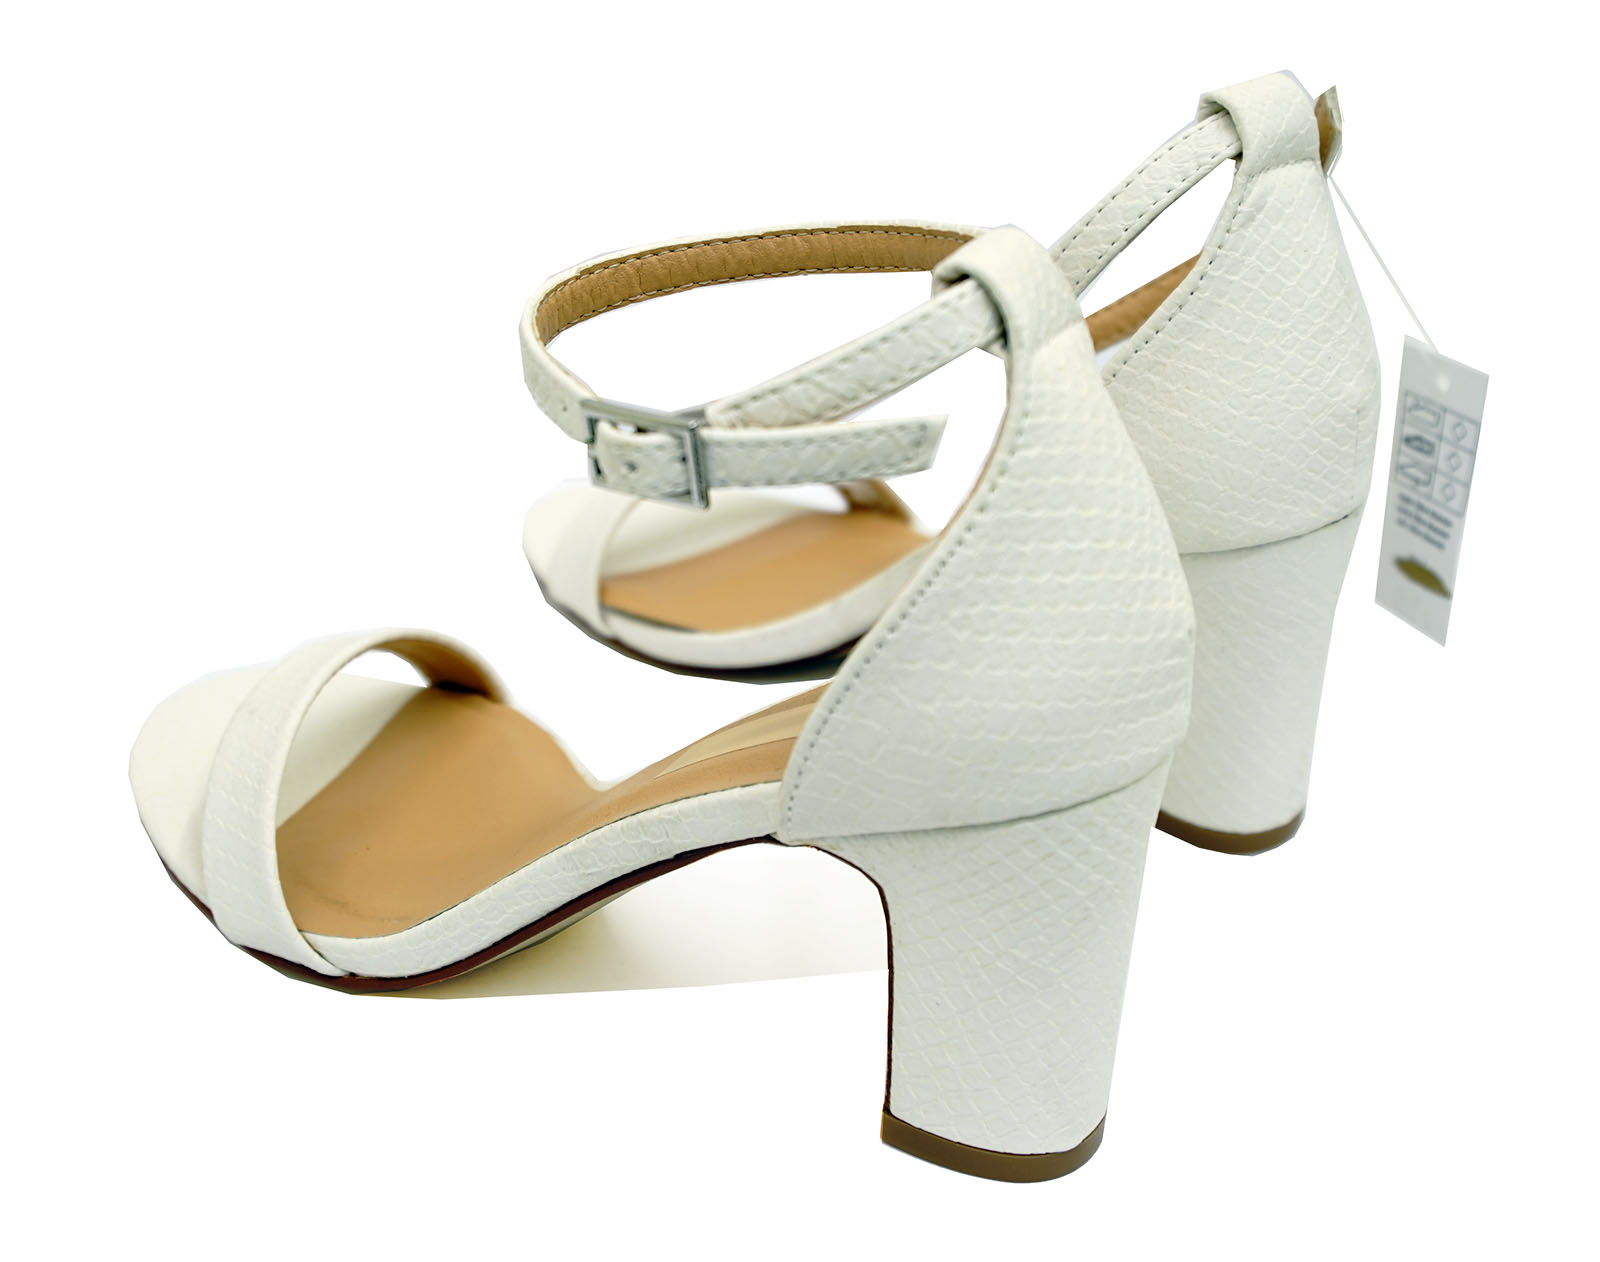 LADIES-WHITE-ANKLE-STRAP-BLOCK-HEEL-PEEPTOE-SANDALS-HOLIDAY-COMFY-SHOES-UK-3-8 thumbnail 8